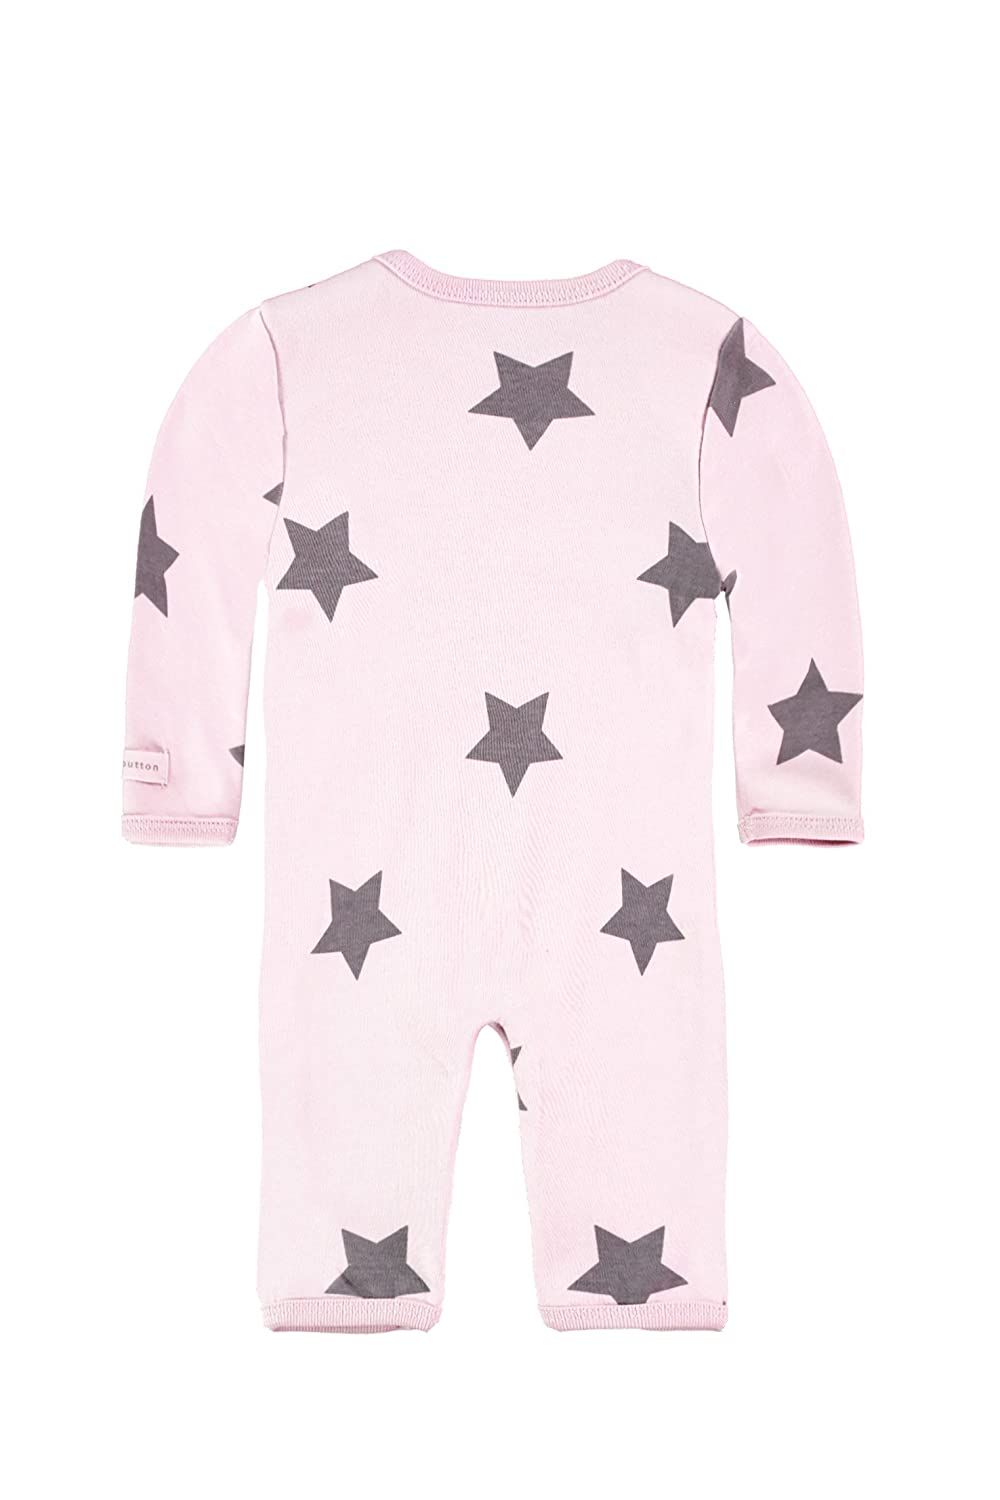 bellybutton Unisex Overall 1//1 Arm Footies